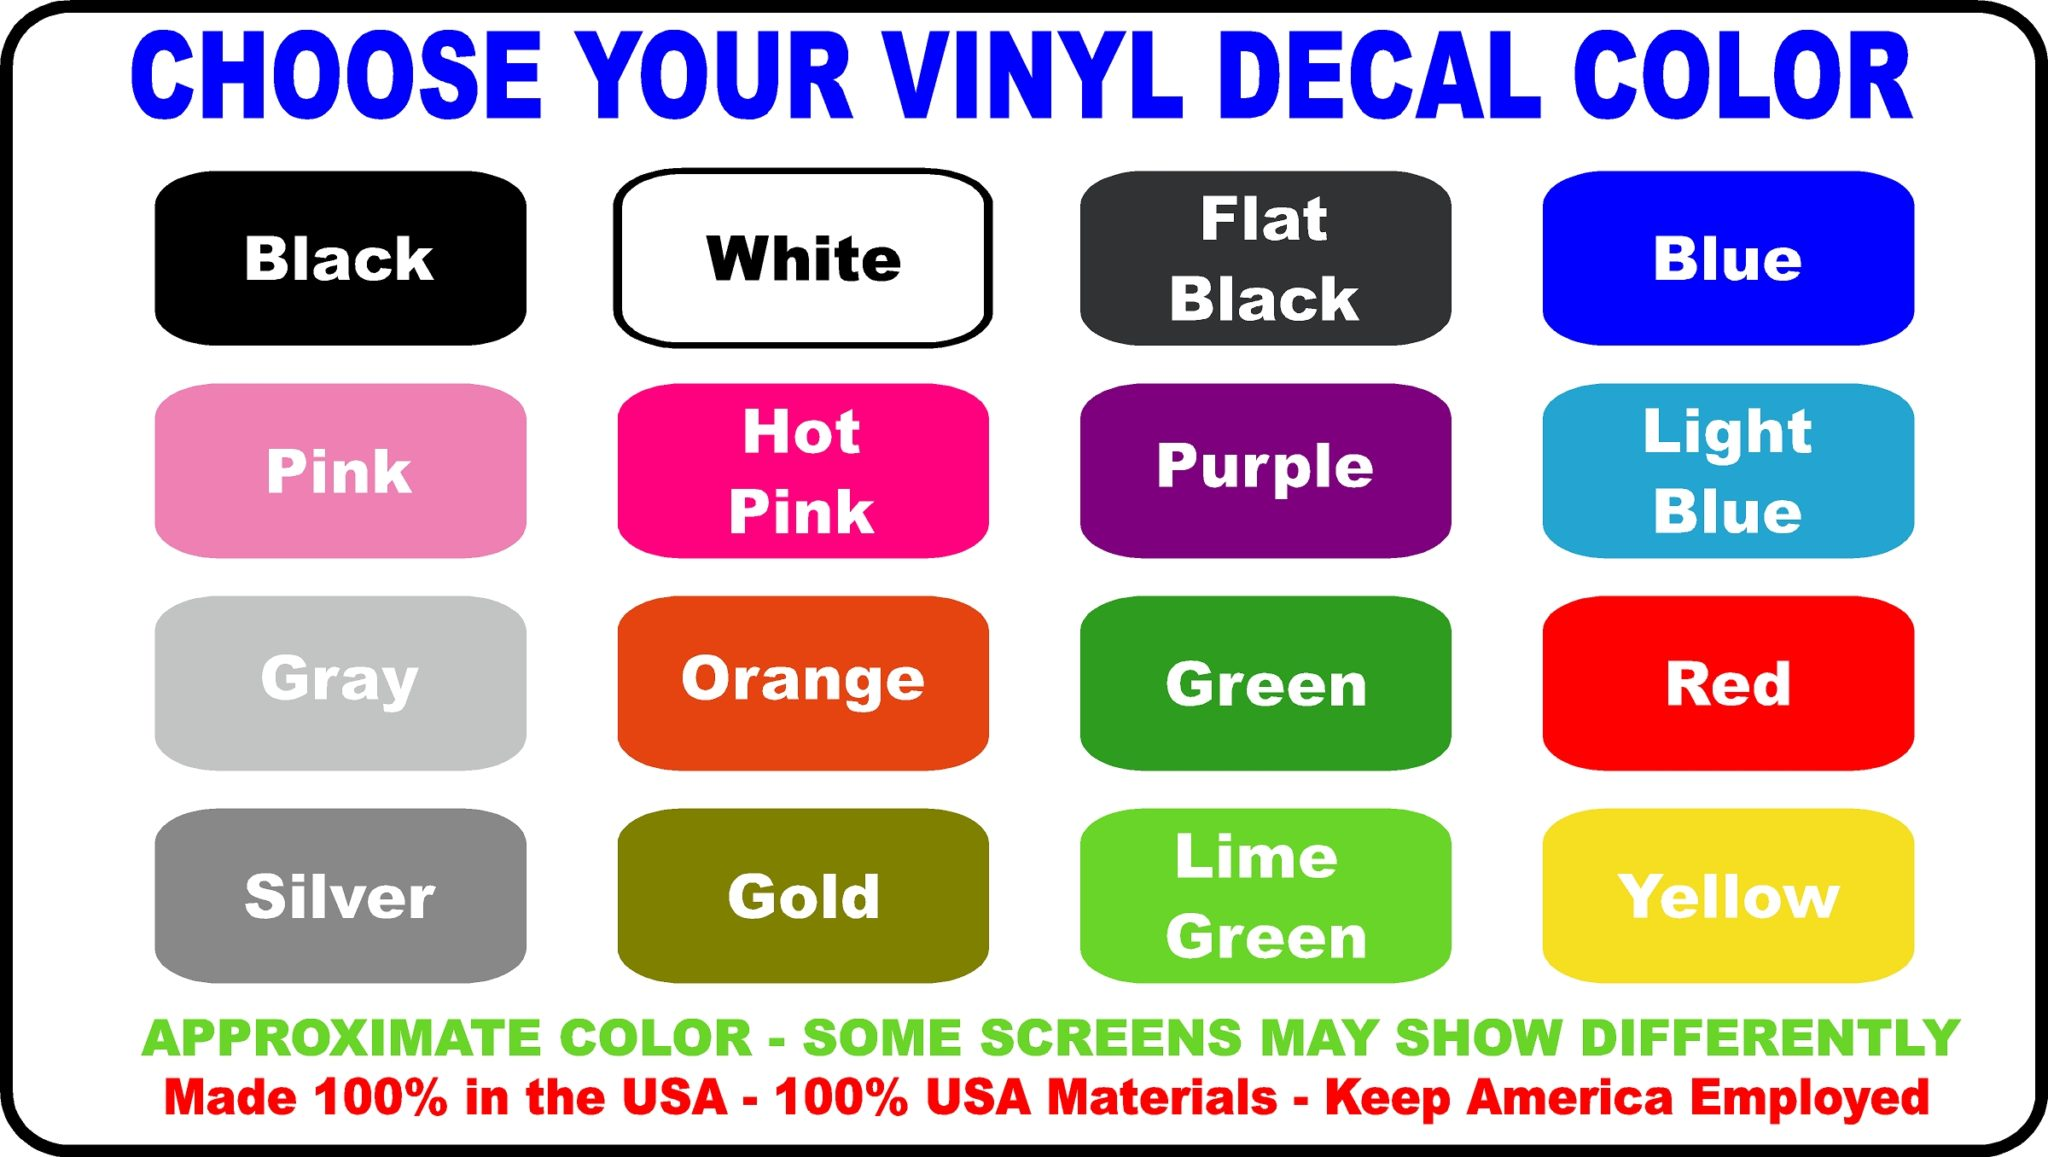 Choose Your Vinyl Decal Color Choice